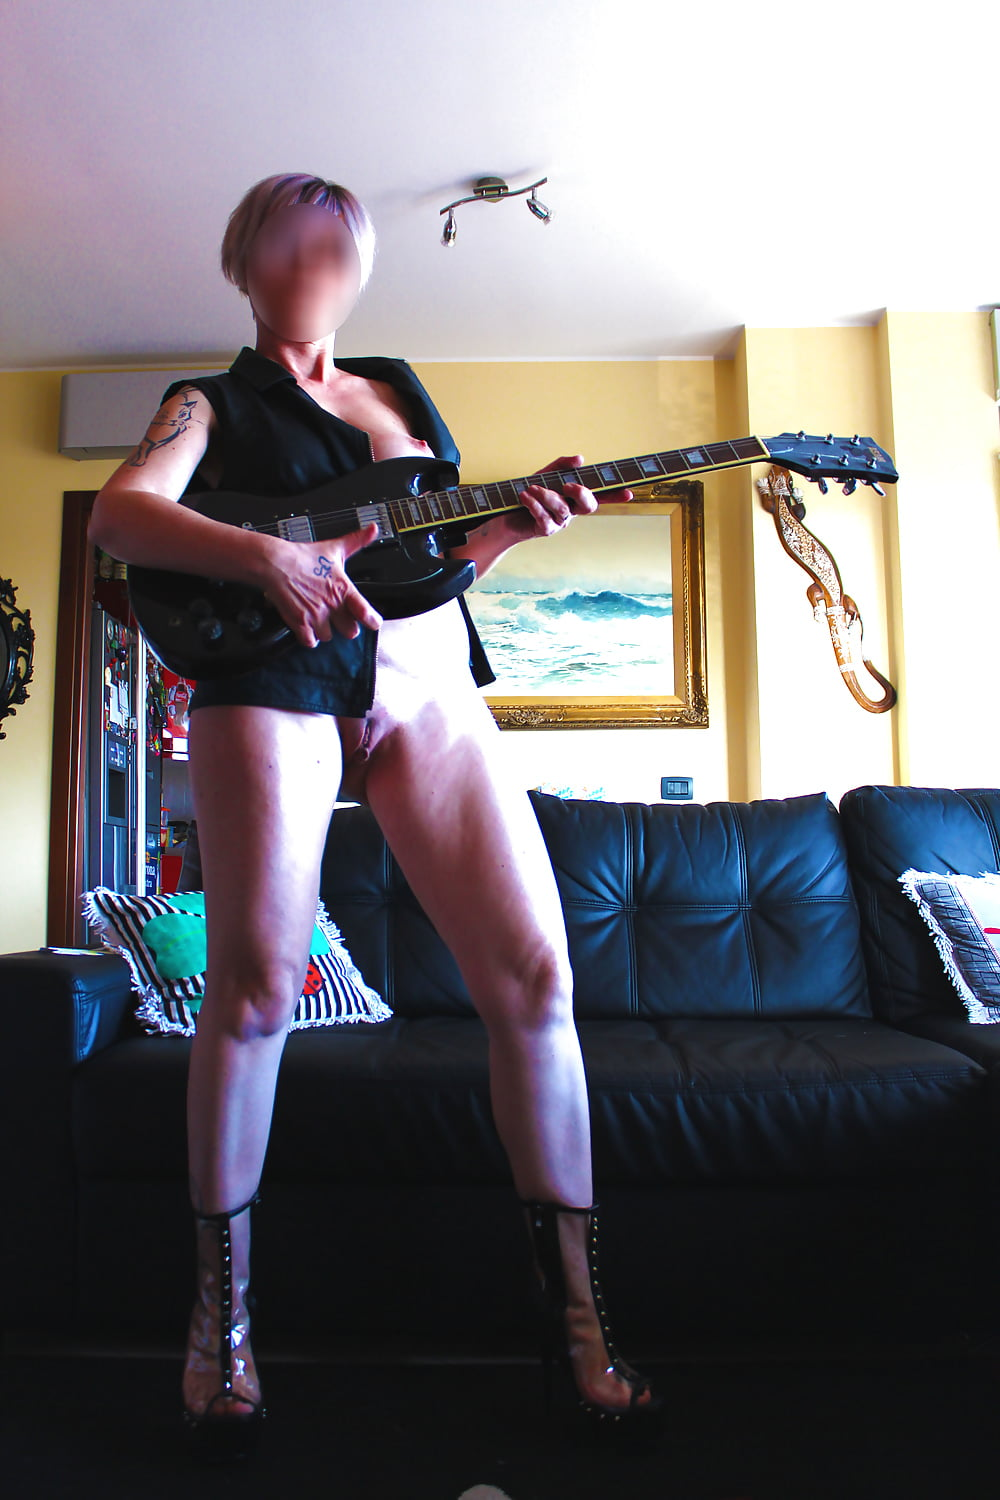 Izi guitar lesson turned into anal lesson - 2 part 7